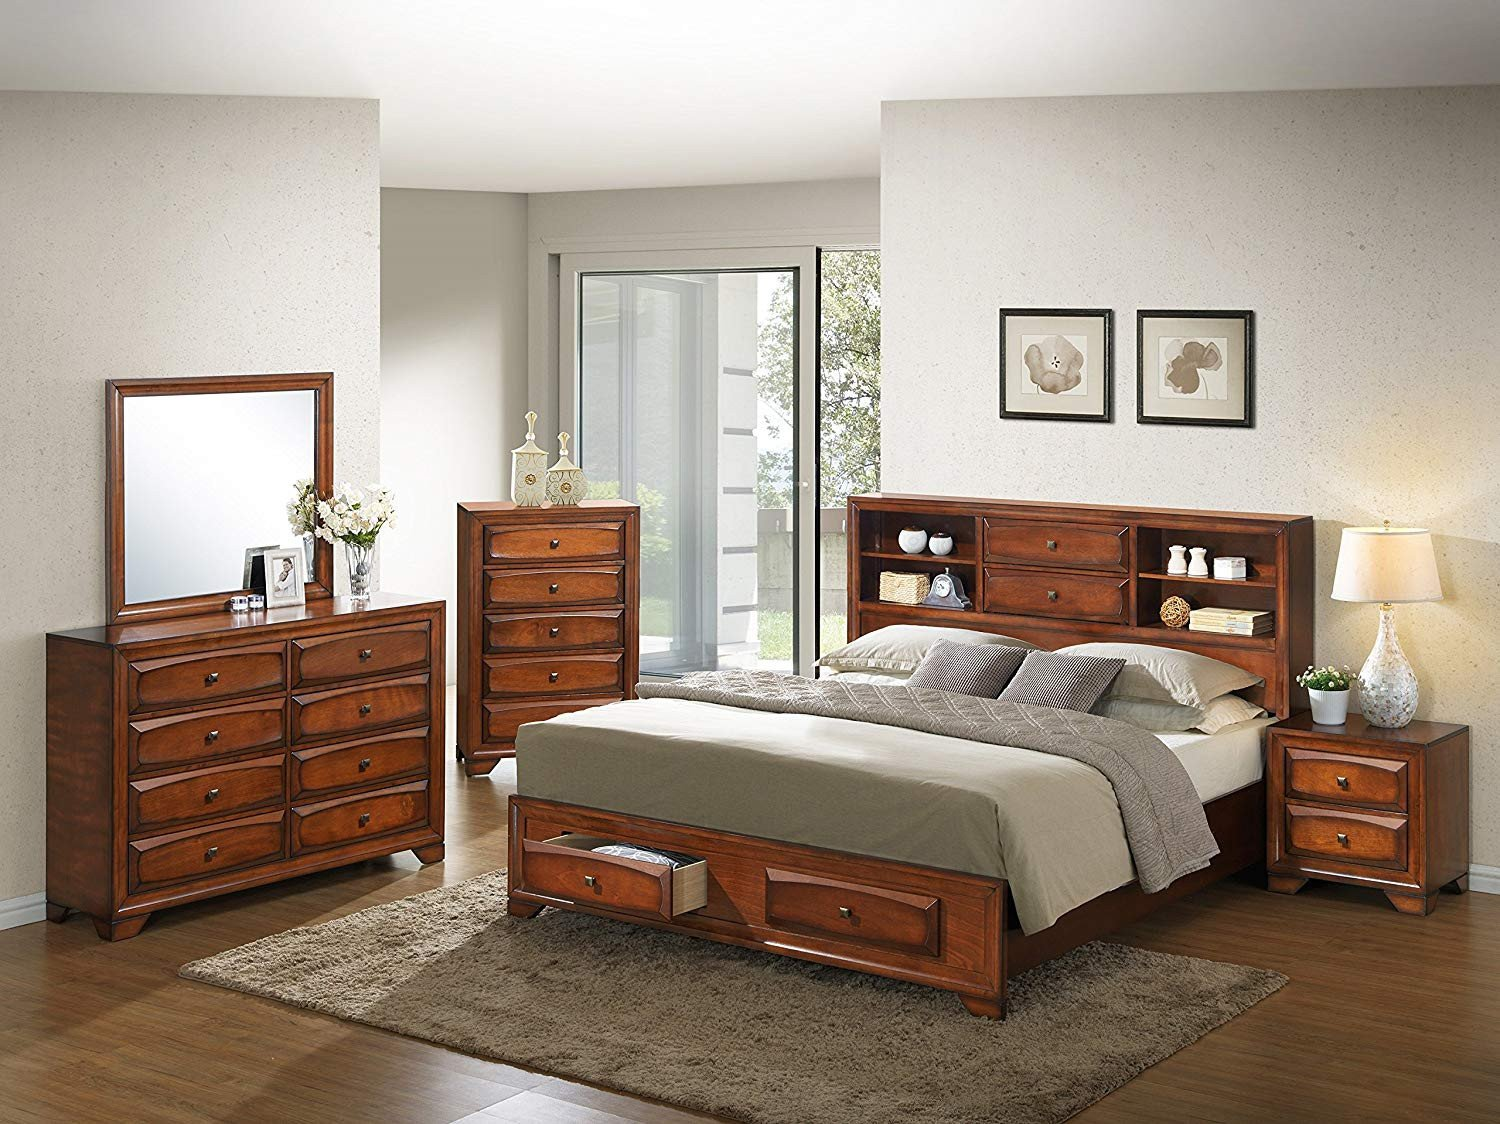 Mirror Bedroom Furniture Set Beautiful Roundhill Furniture asger Wood Room Set Queen Storage Bed Dresser Mirror Night Stand Chest